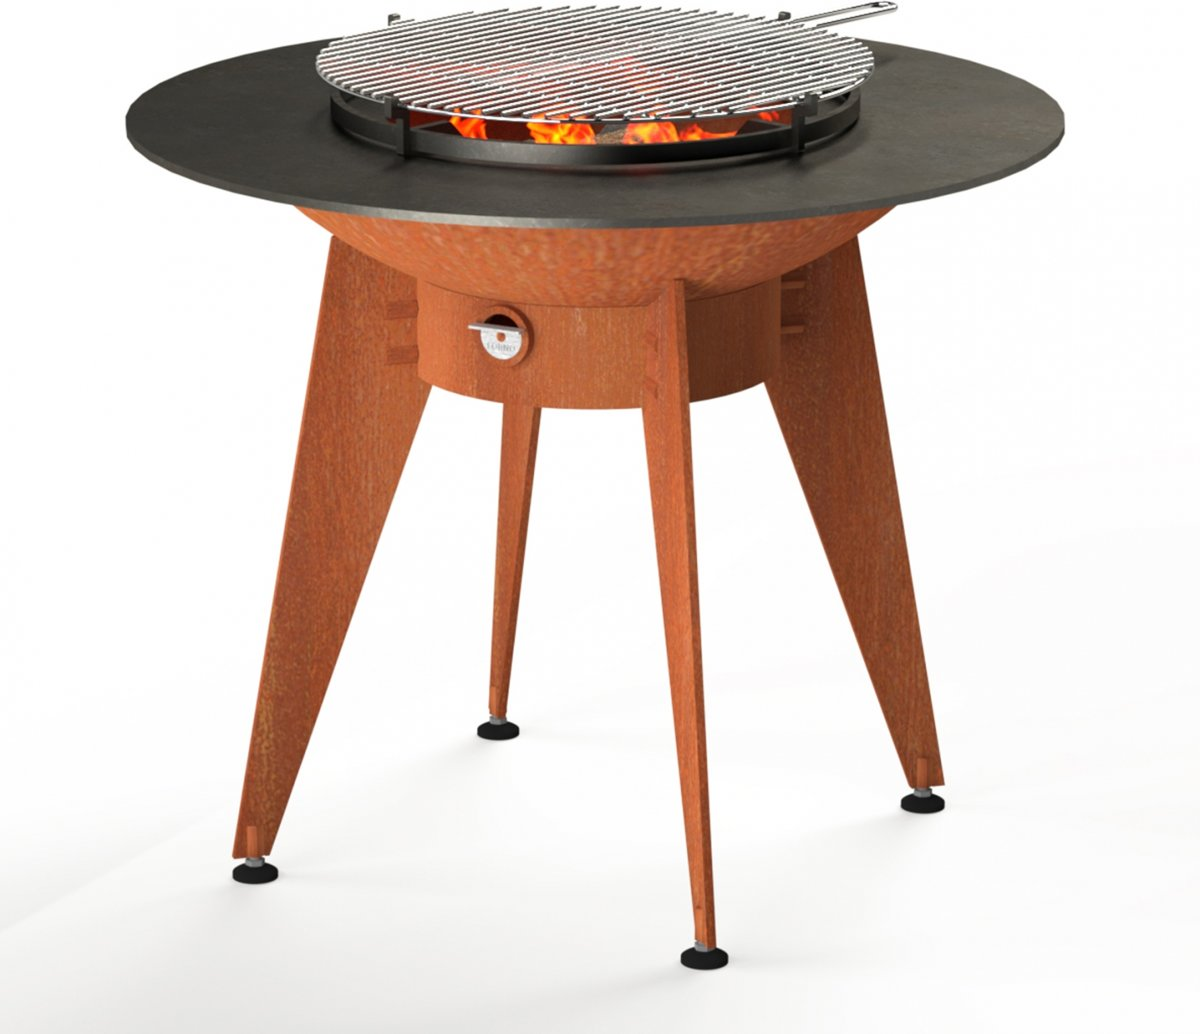 Forno Grill Ring op poten - Barbecue - Vuurschaal - Ø100cm